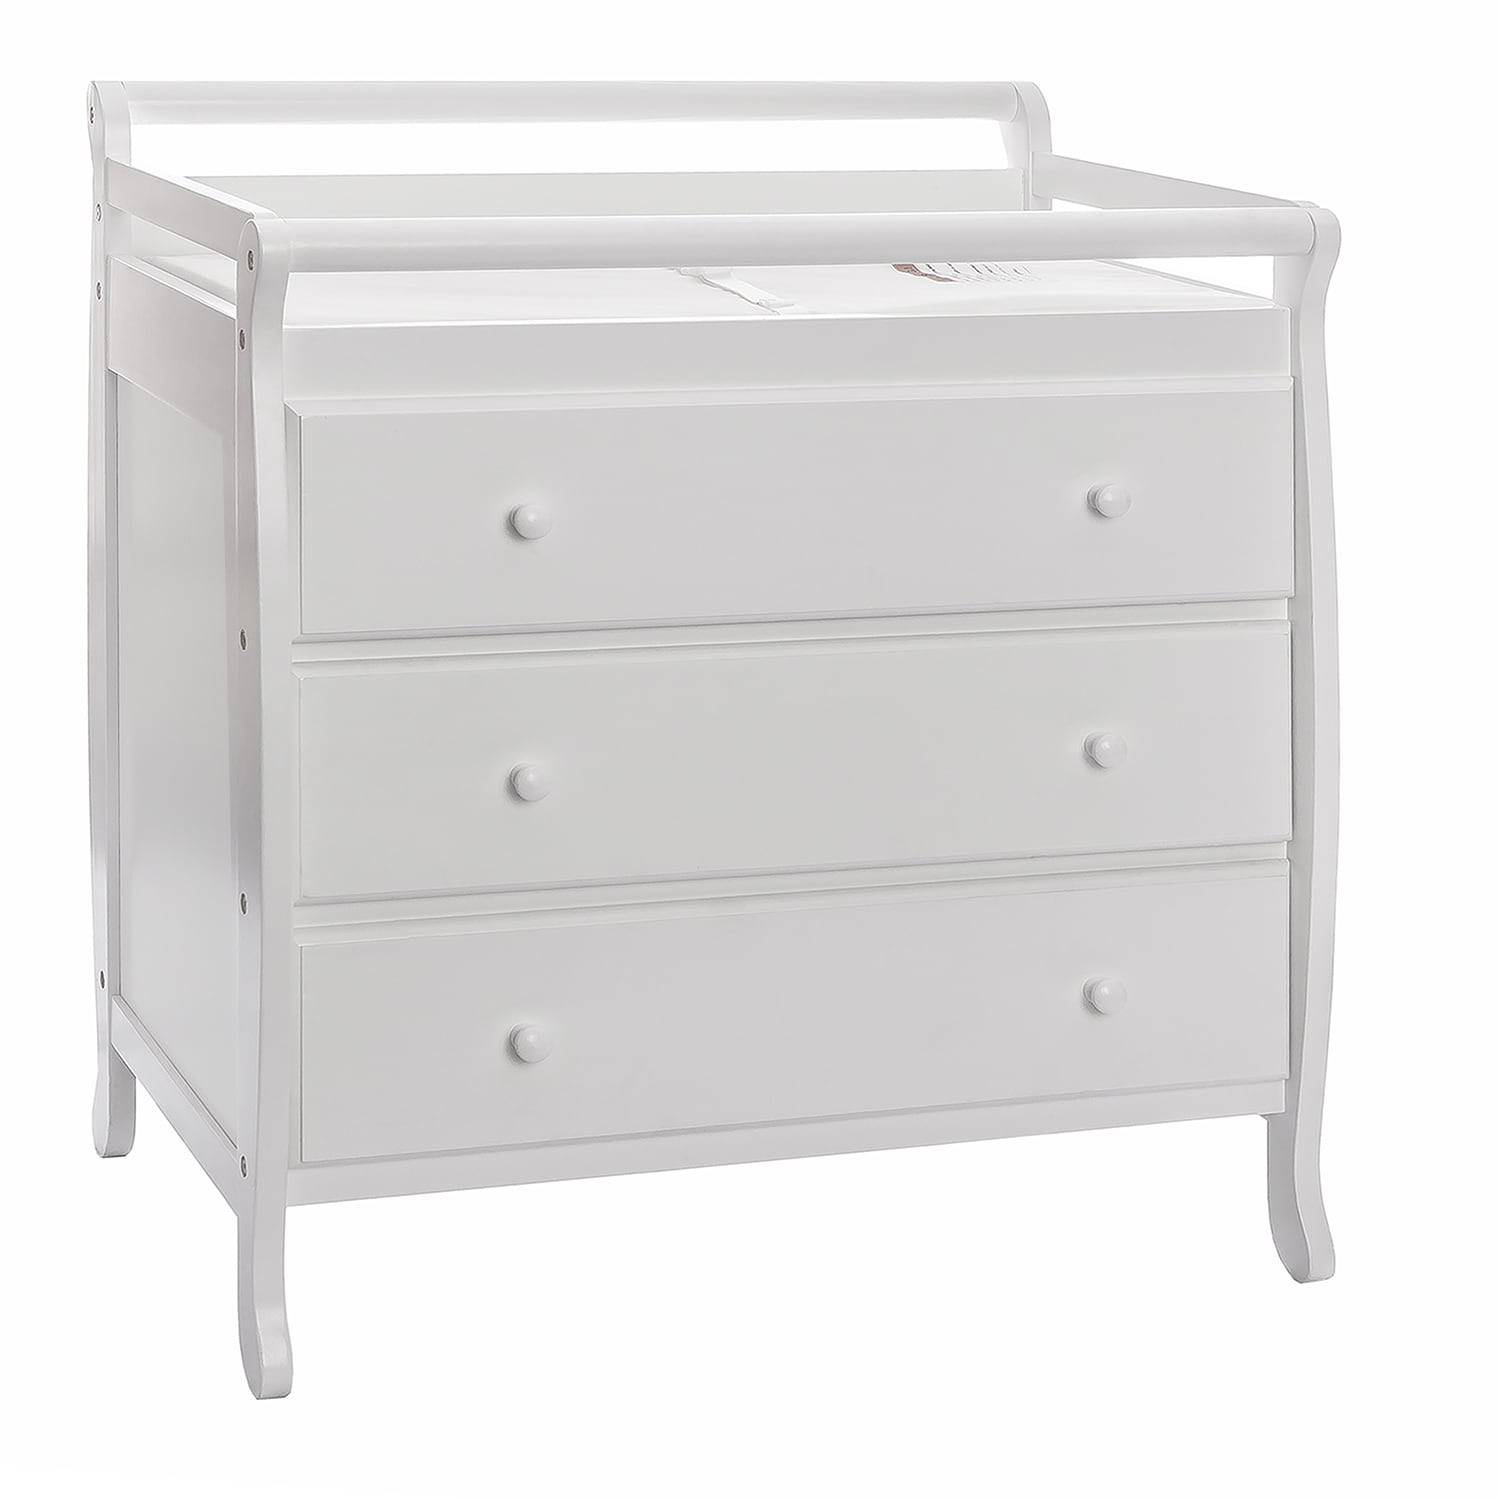 changing cache dressers babies table cheap white harbor us r baby drawer dresser